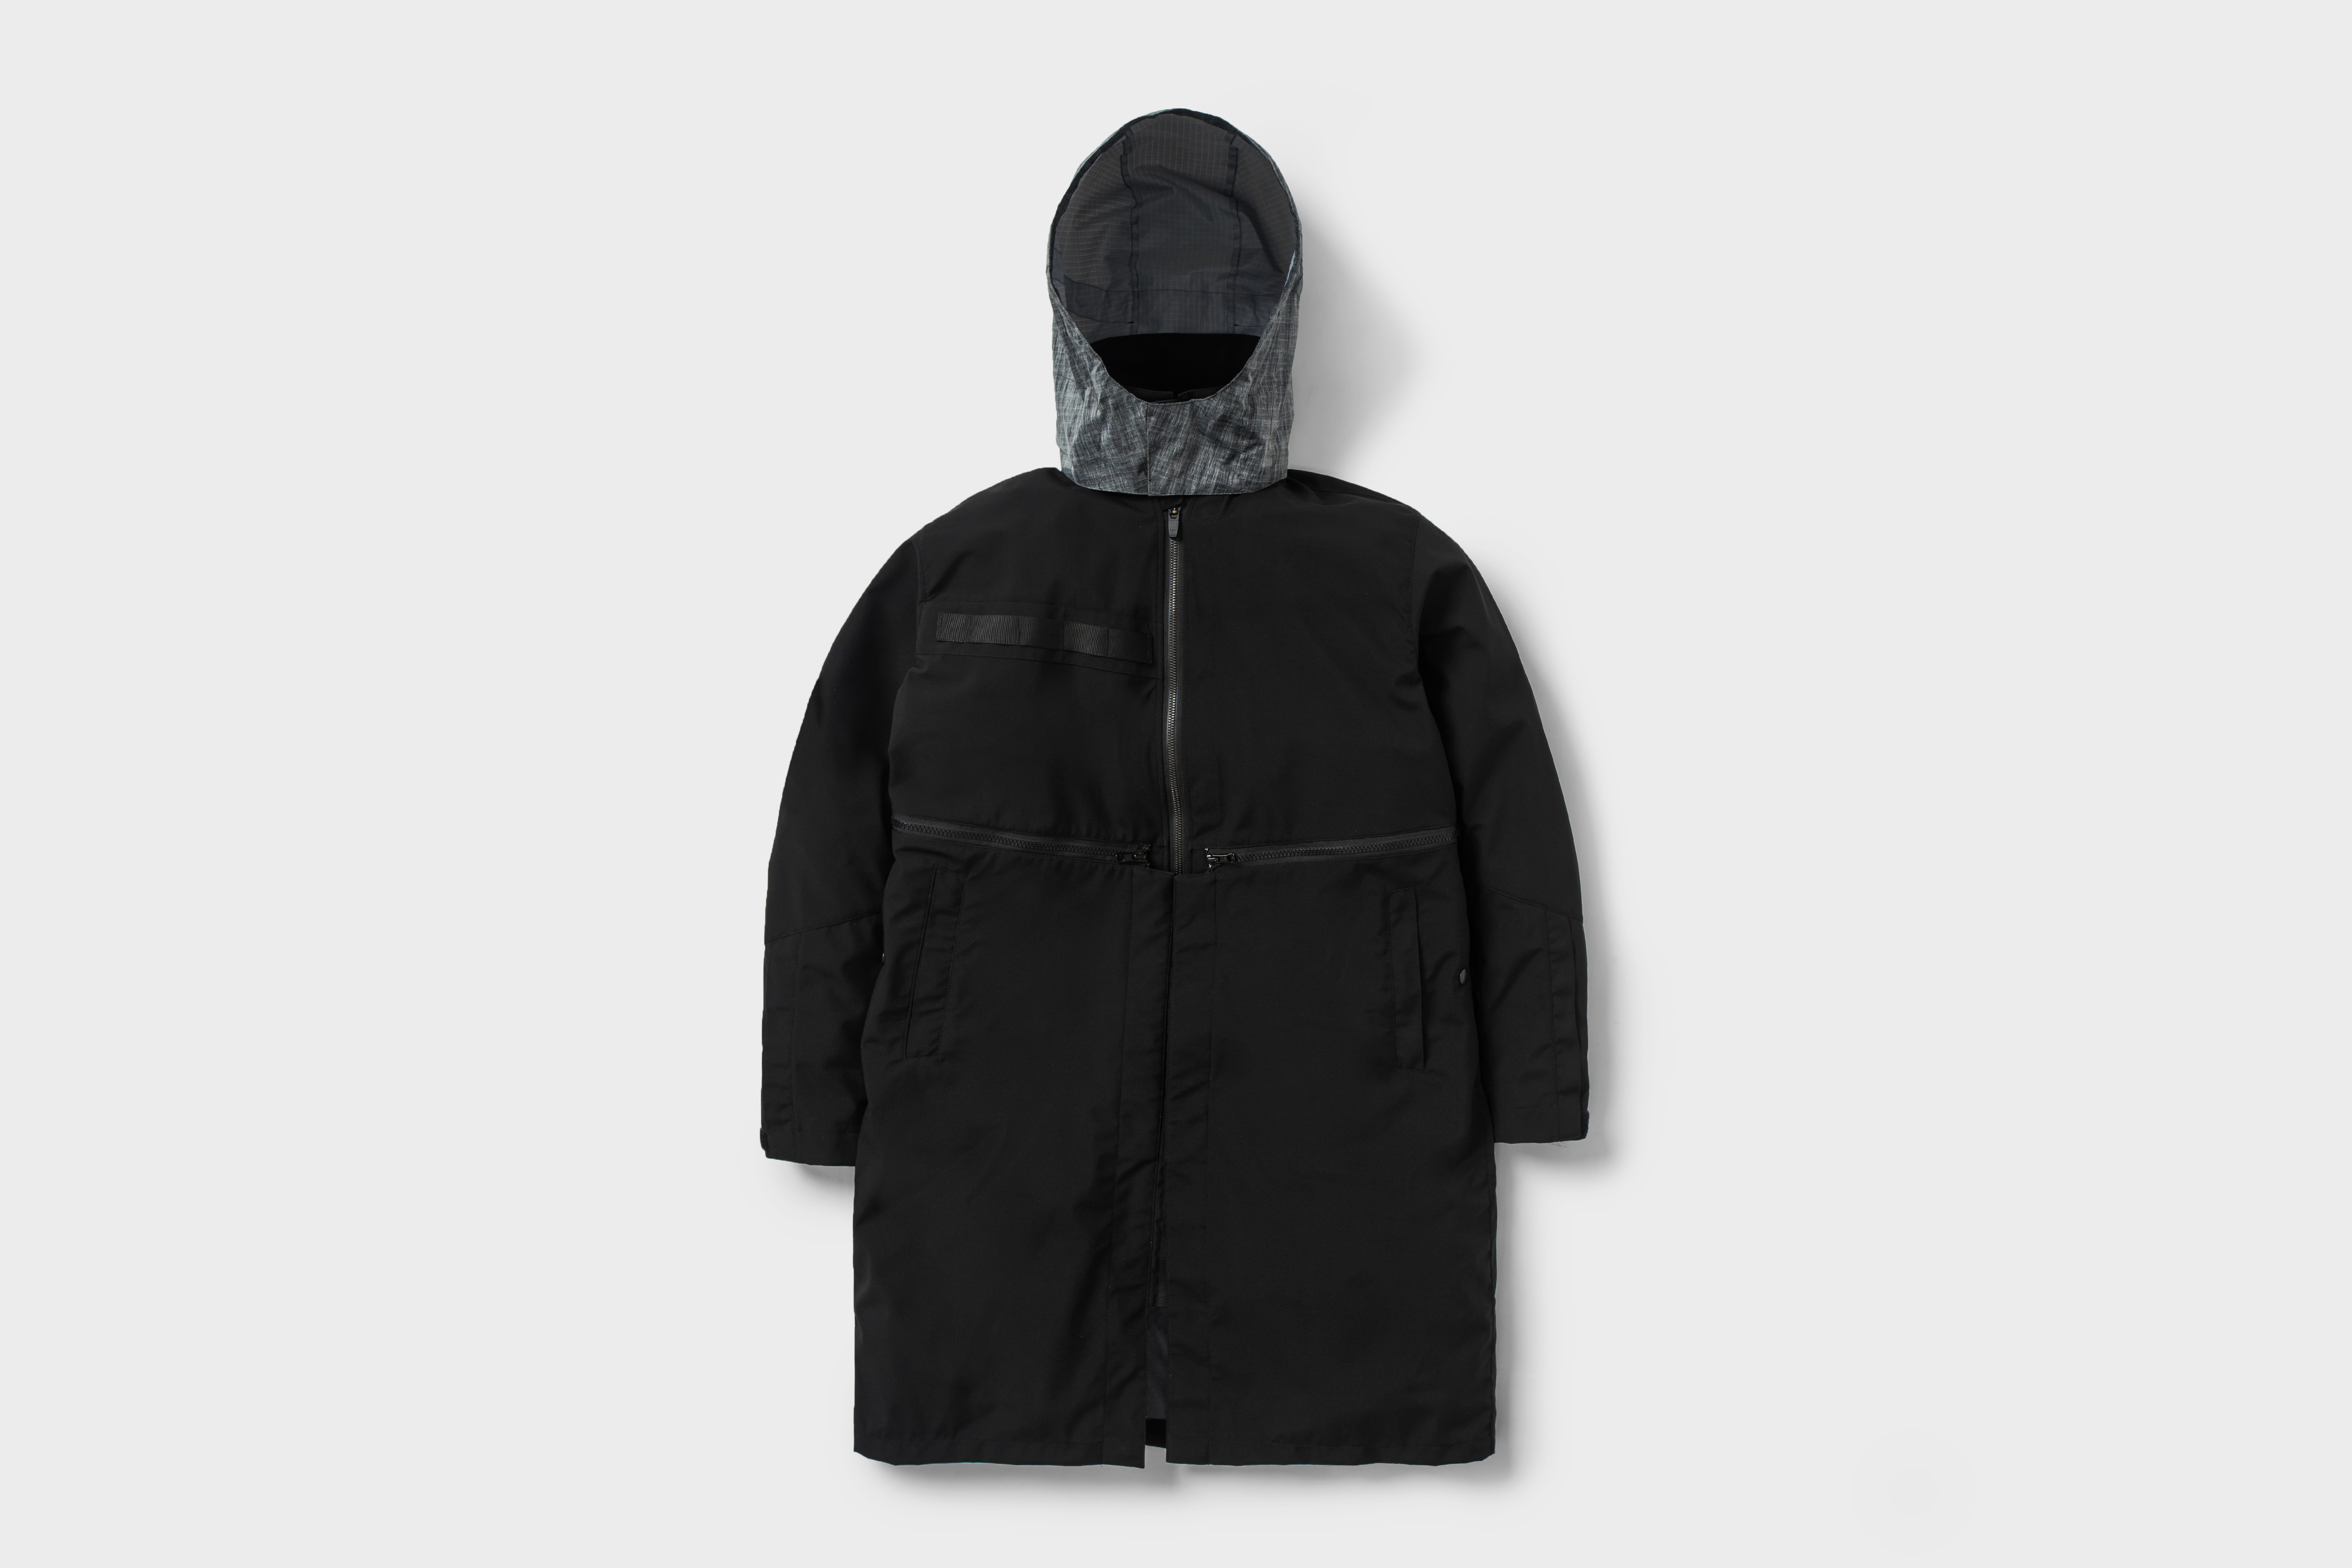 """NOT SS/AW"" Multiform Jacket"